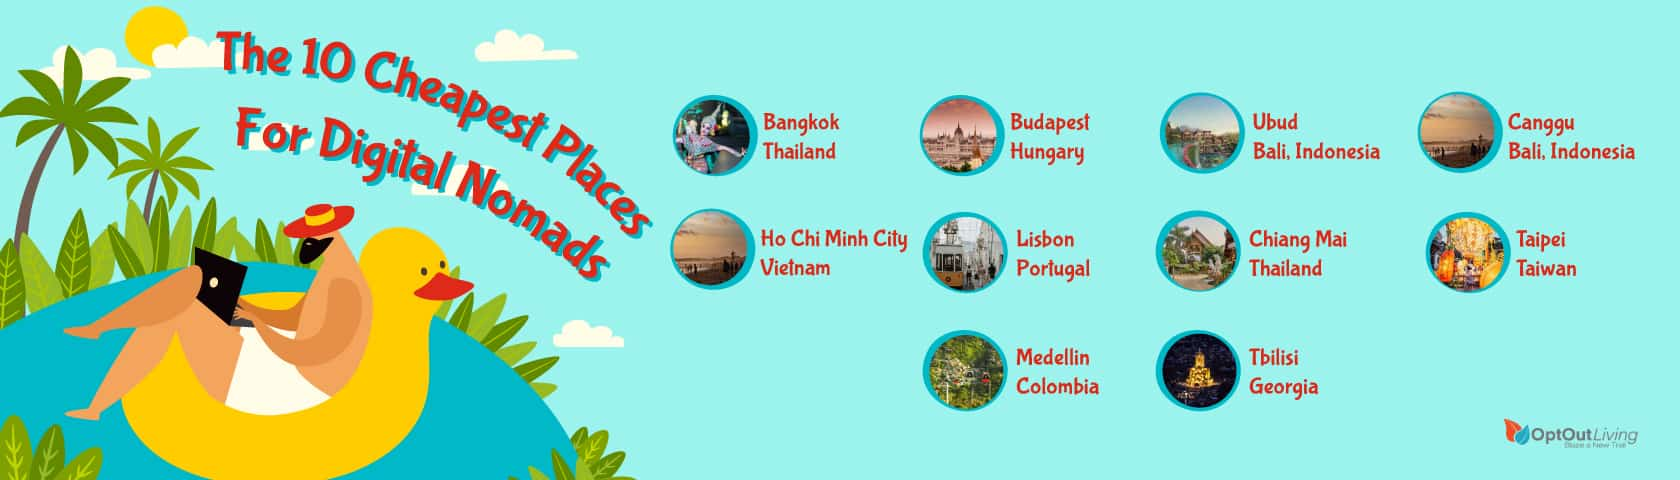 Cheapest places for digital nomads graphic